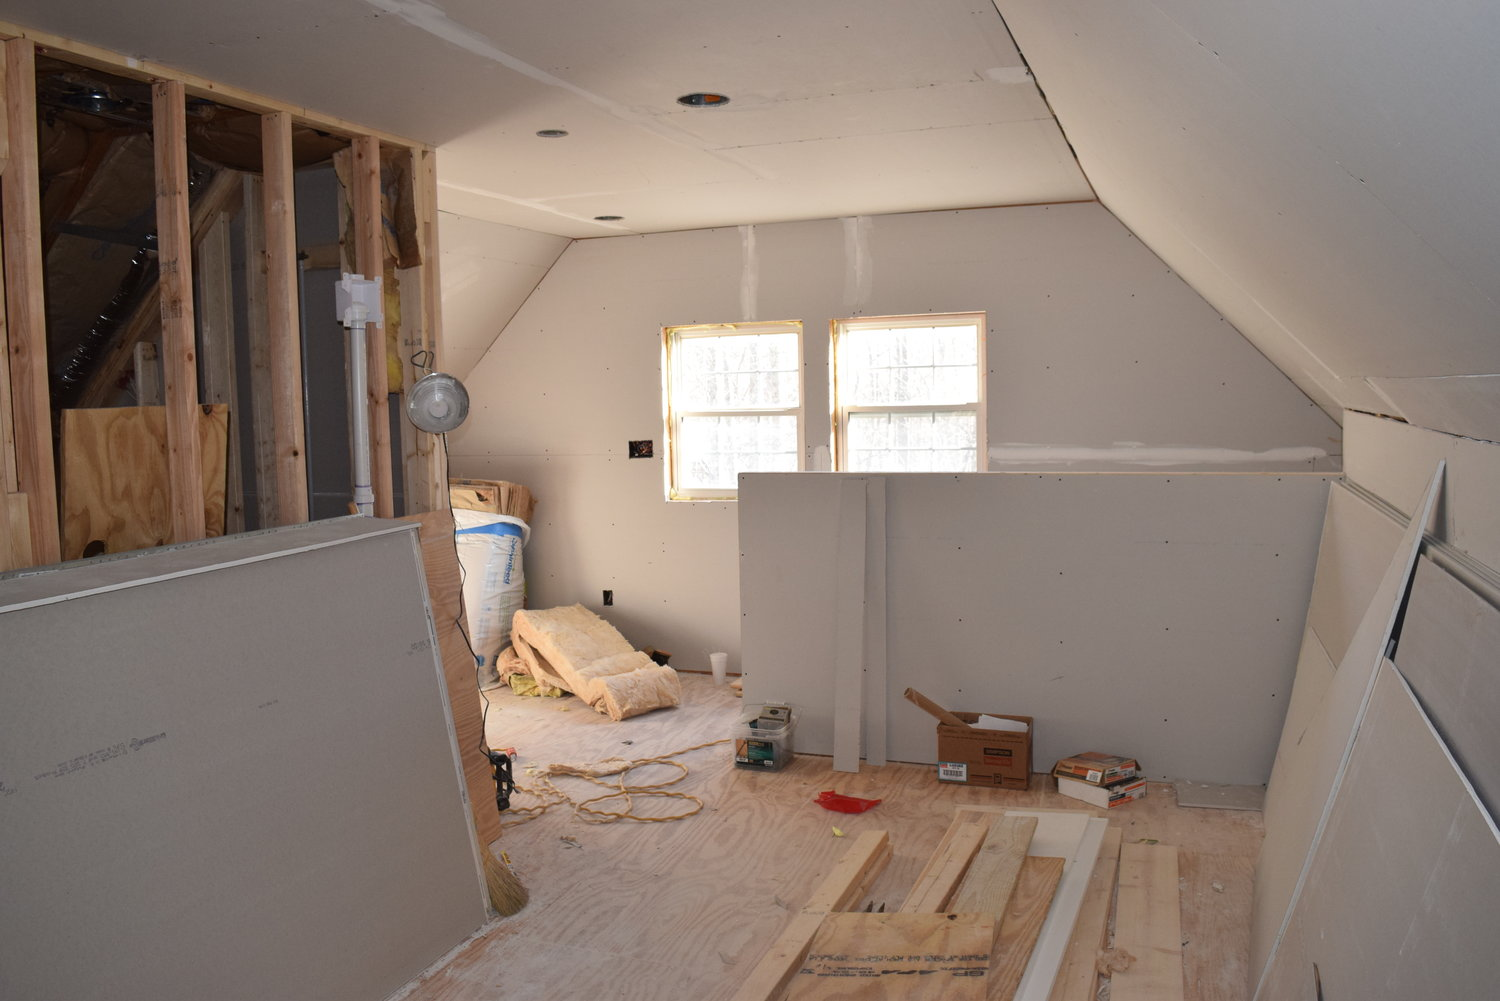 Under Construction - Catch a glimpse into the daily life of general contractors.